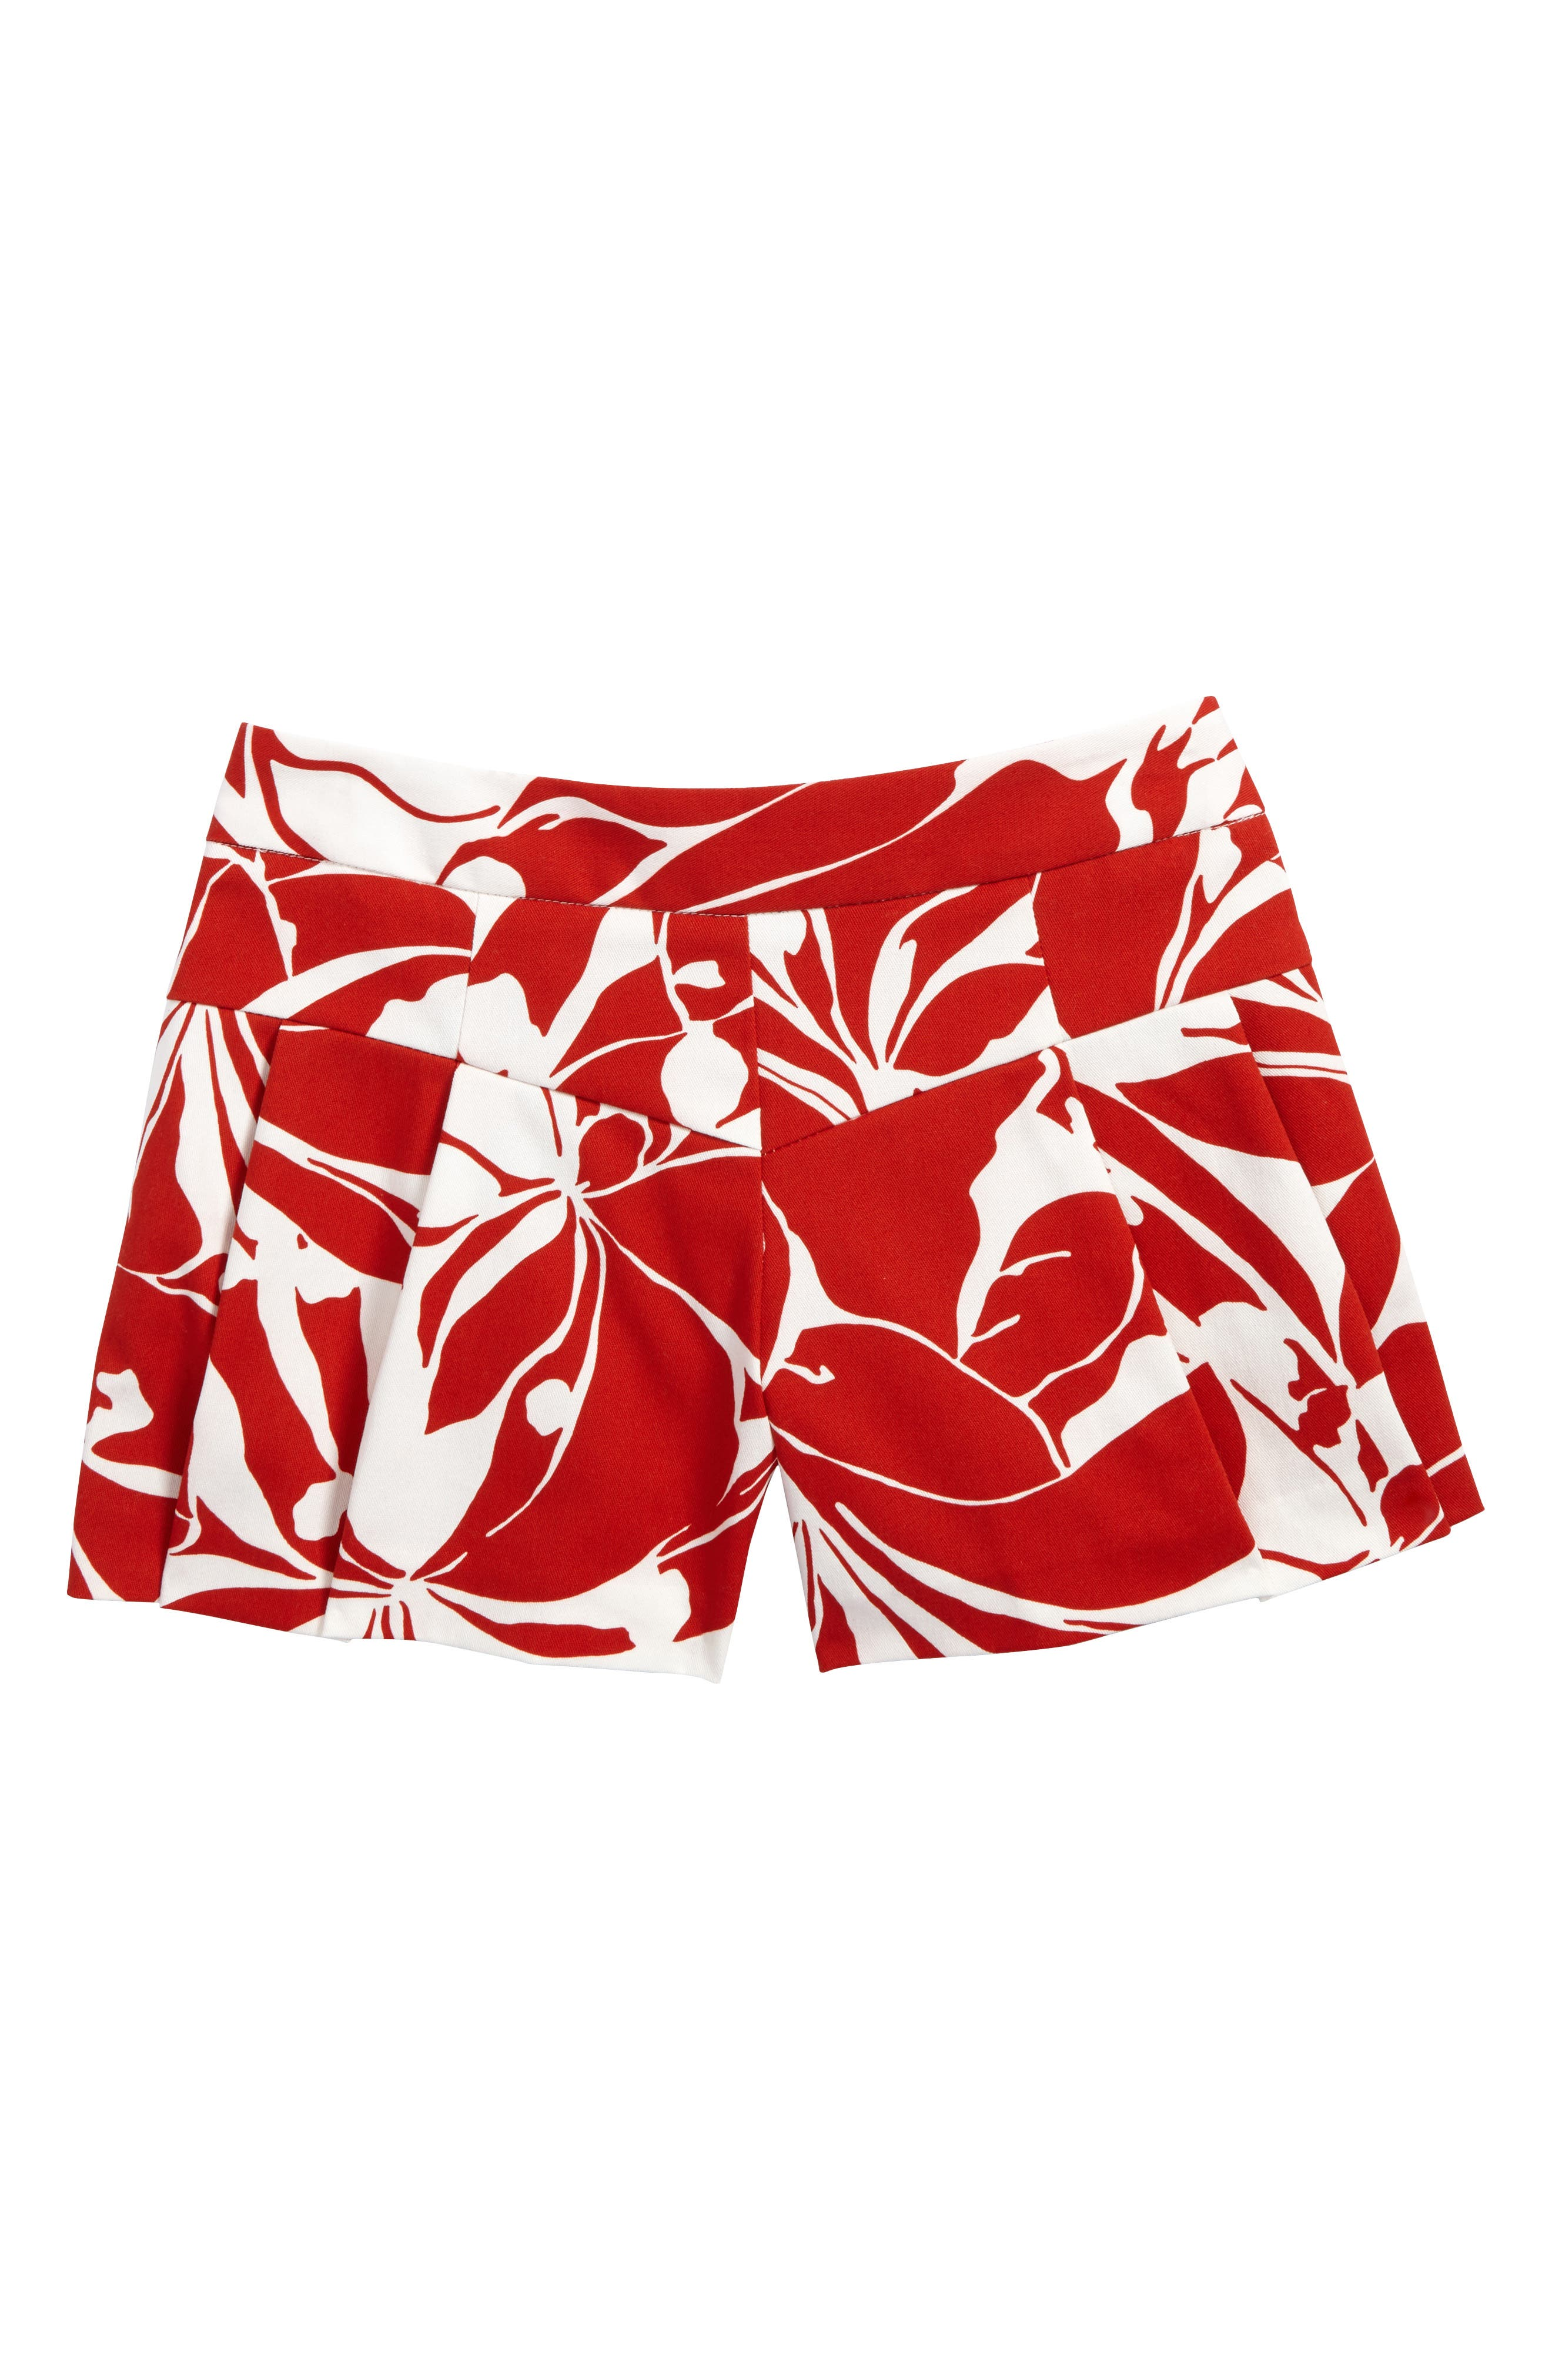 Pleated Shorts,                         Main,                         color, Red/ White